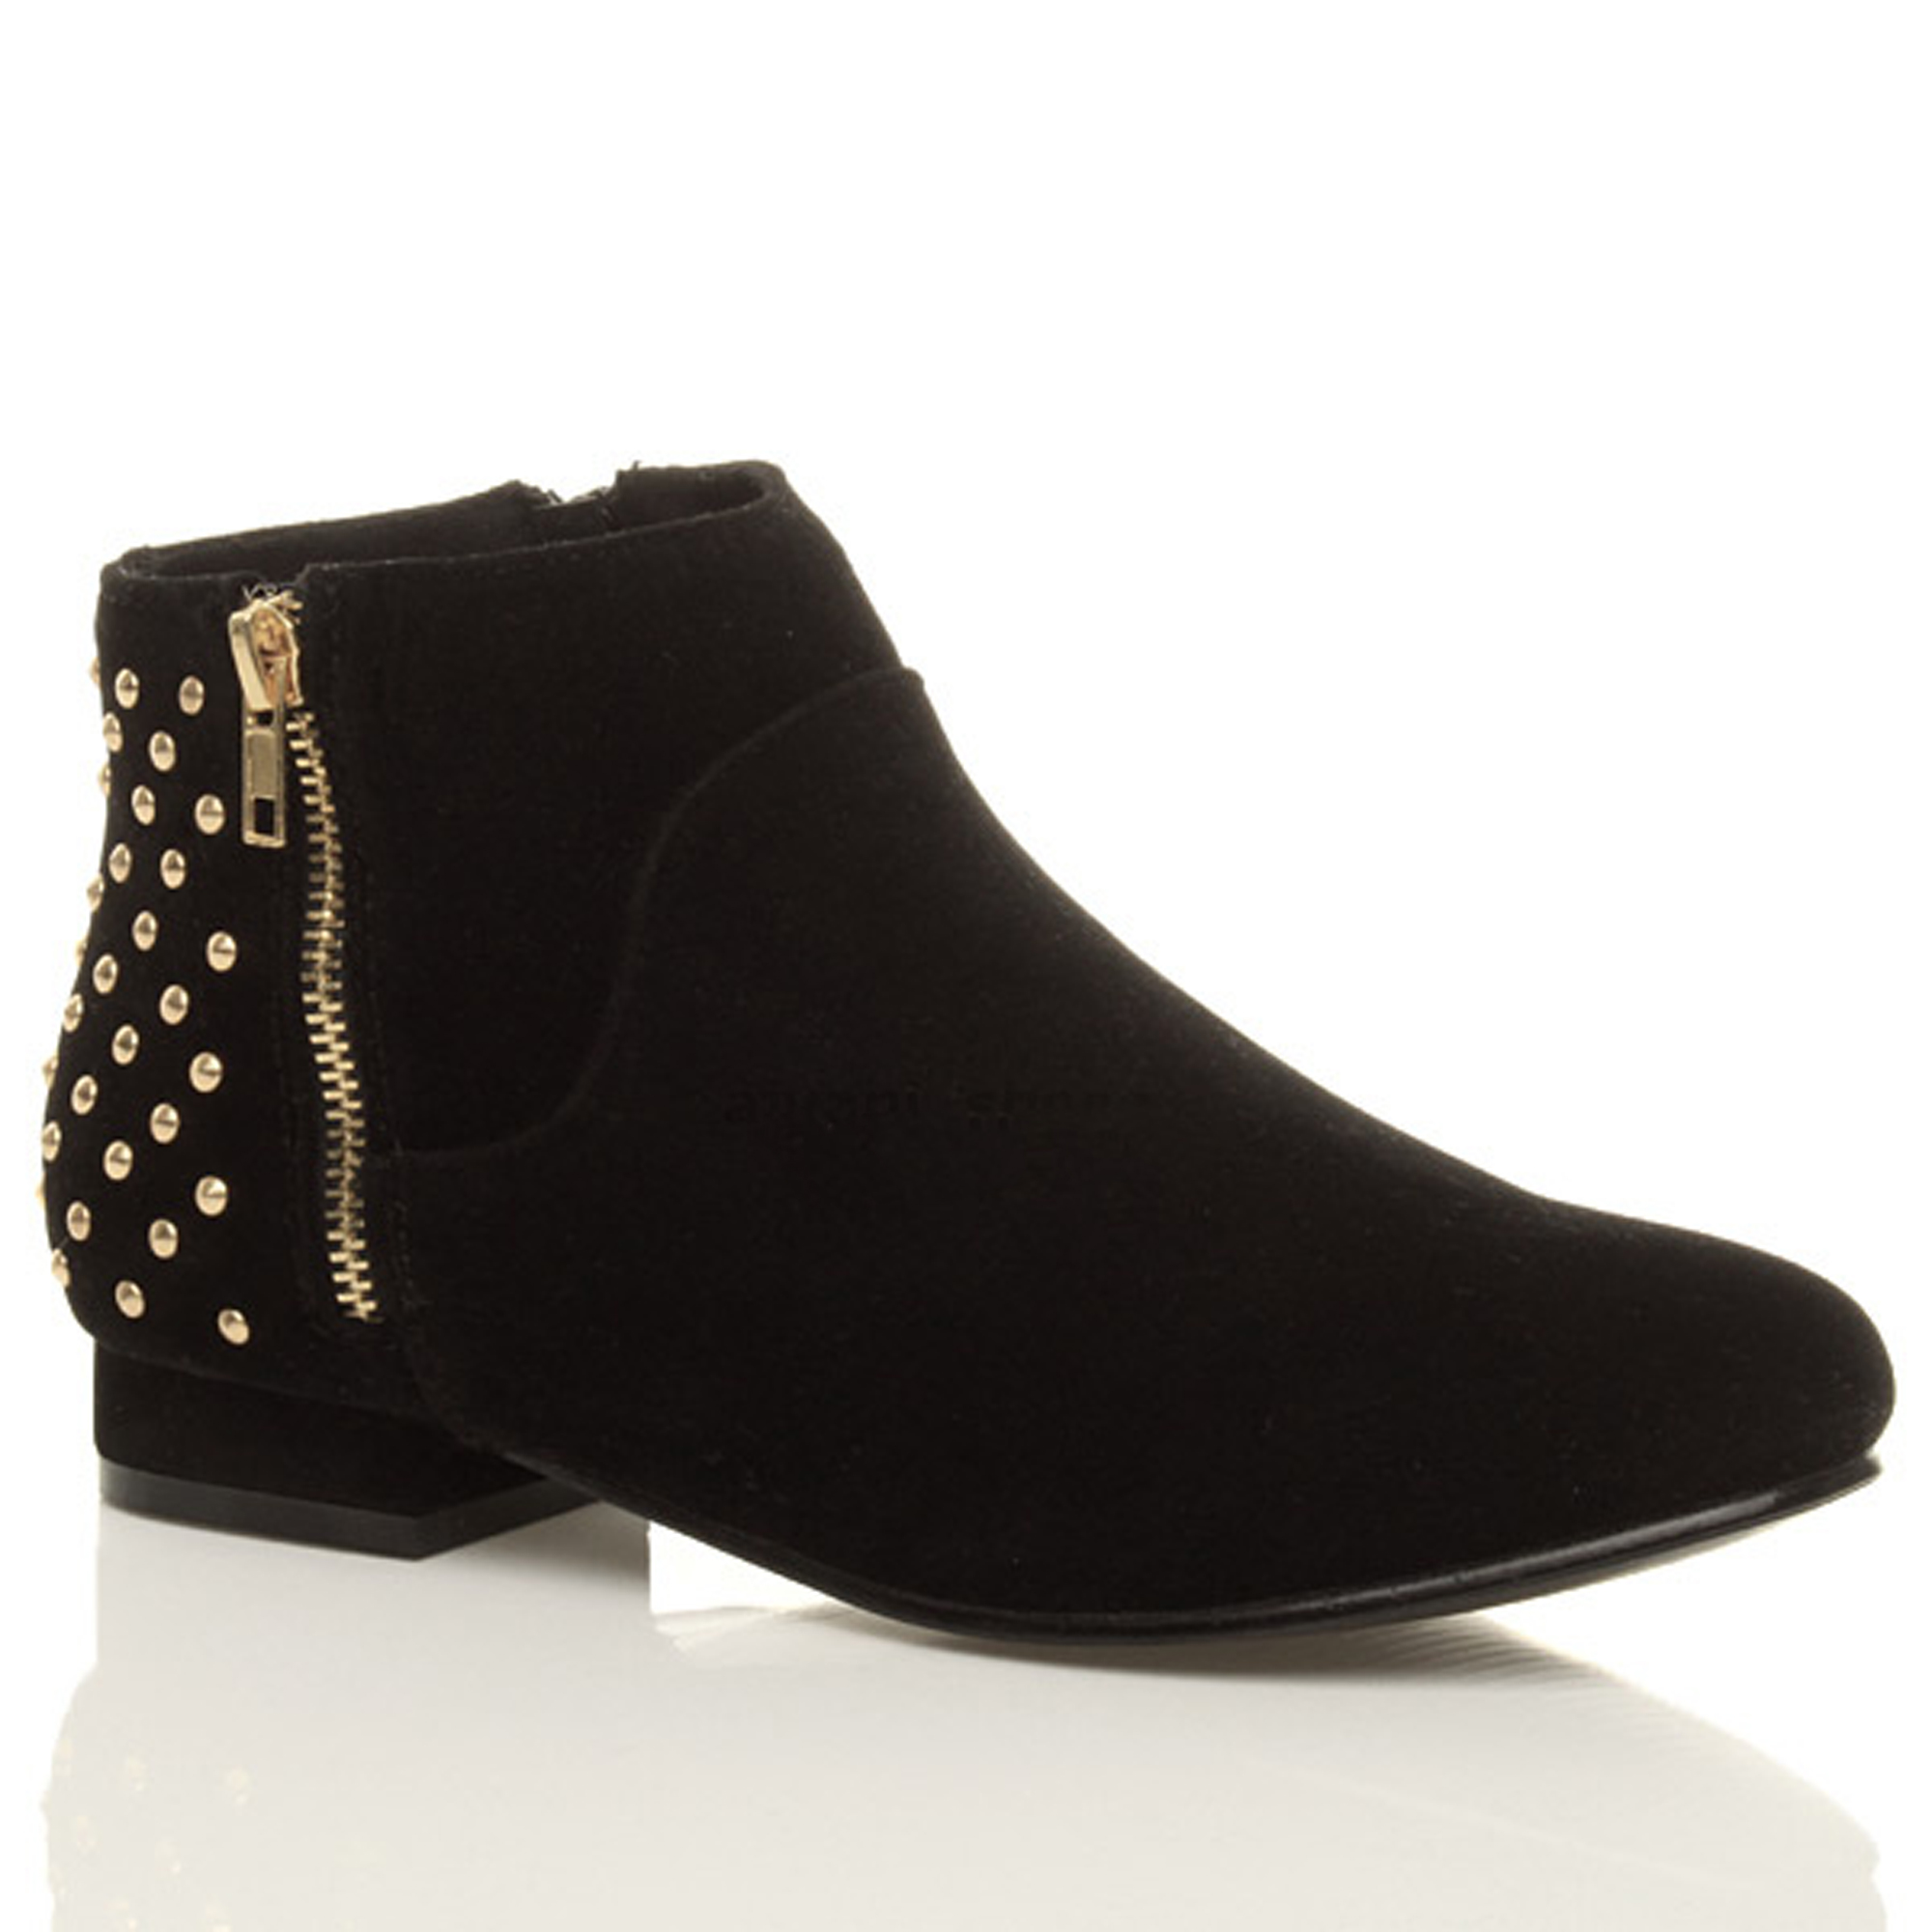 Womens Fashion Booties Size